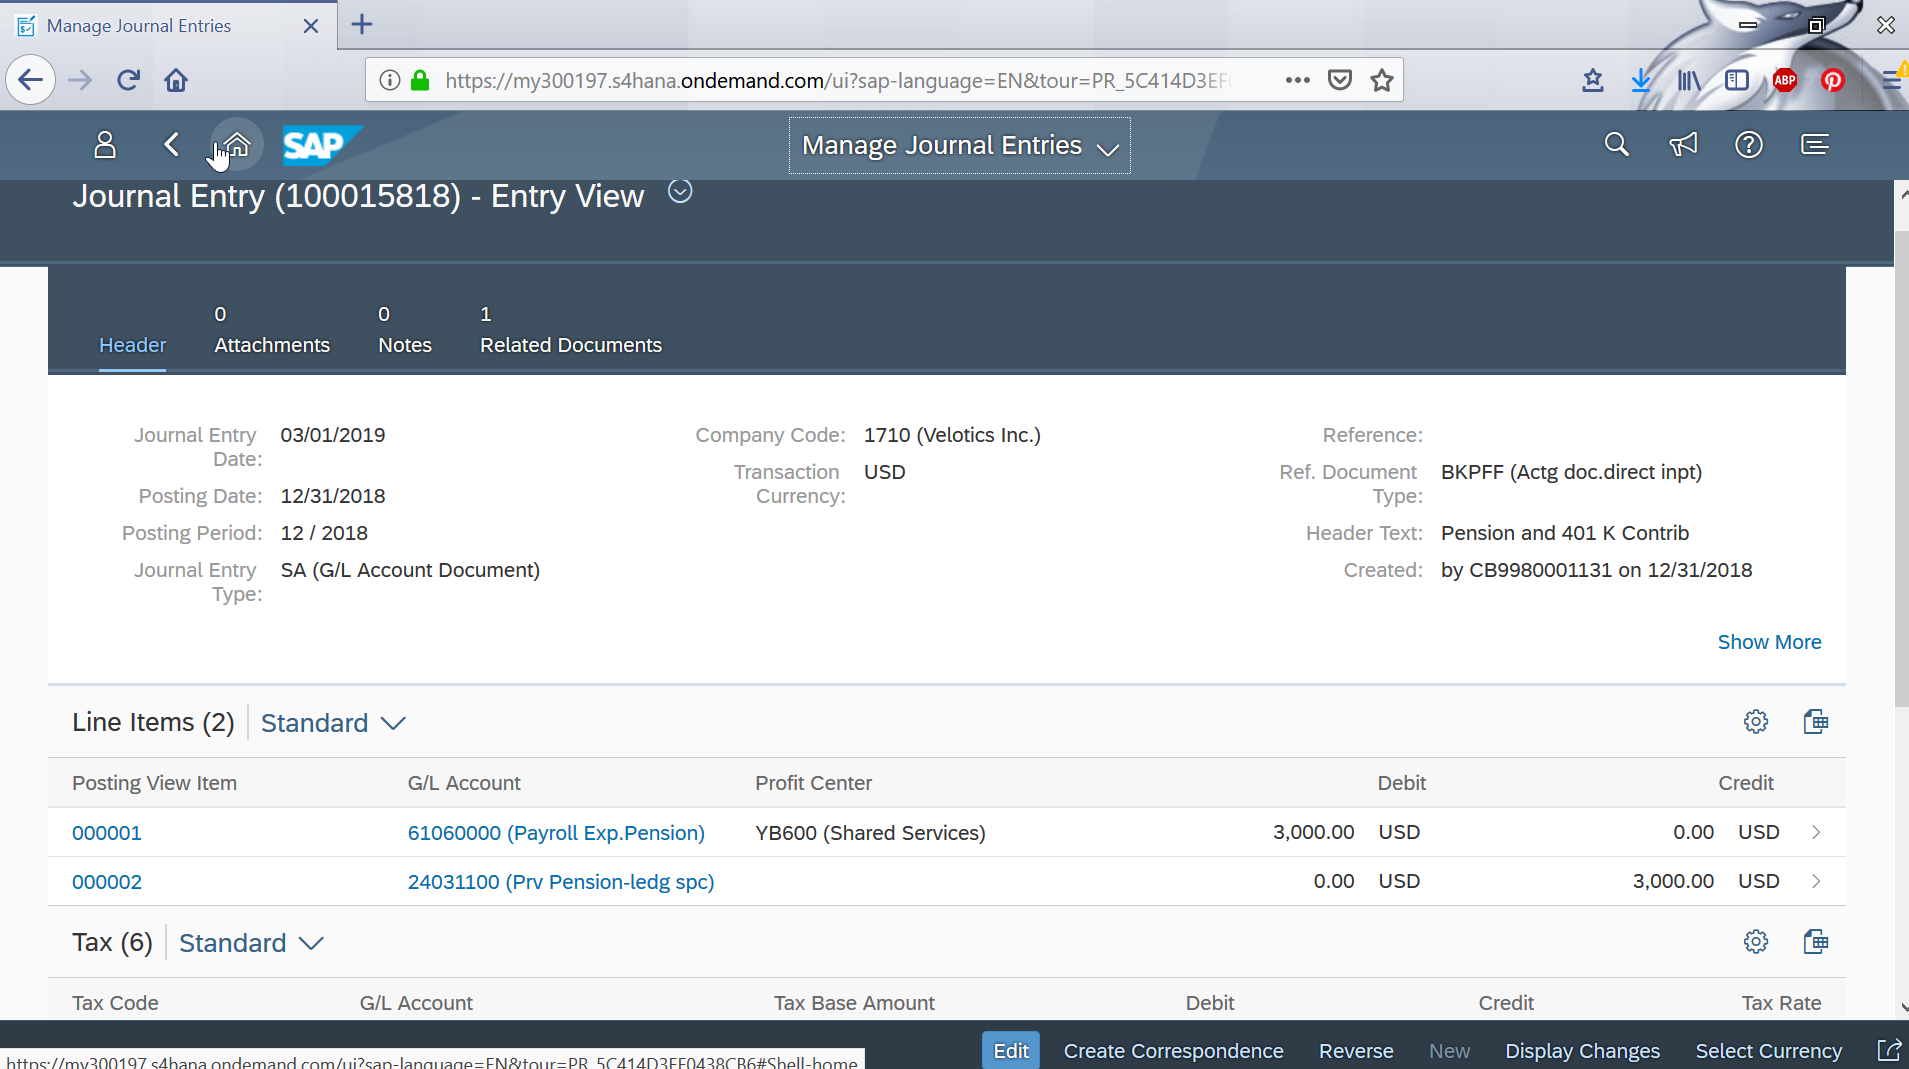 How to manage recurring journal entries in FIORI apps?